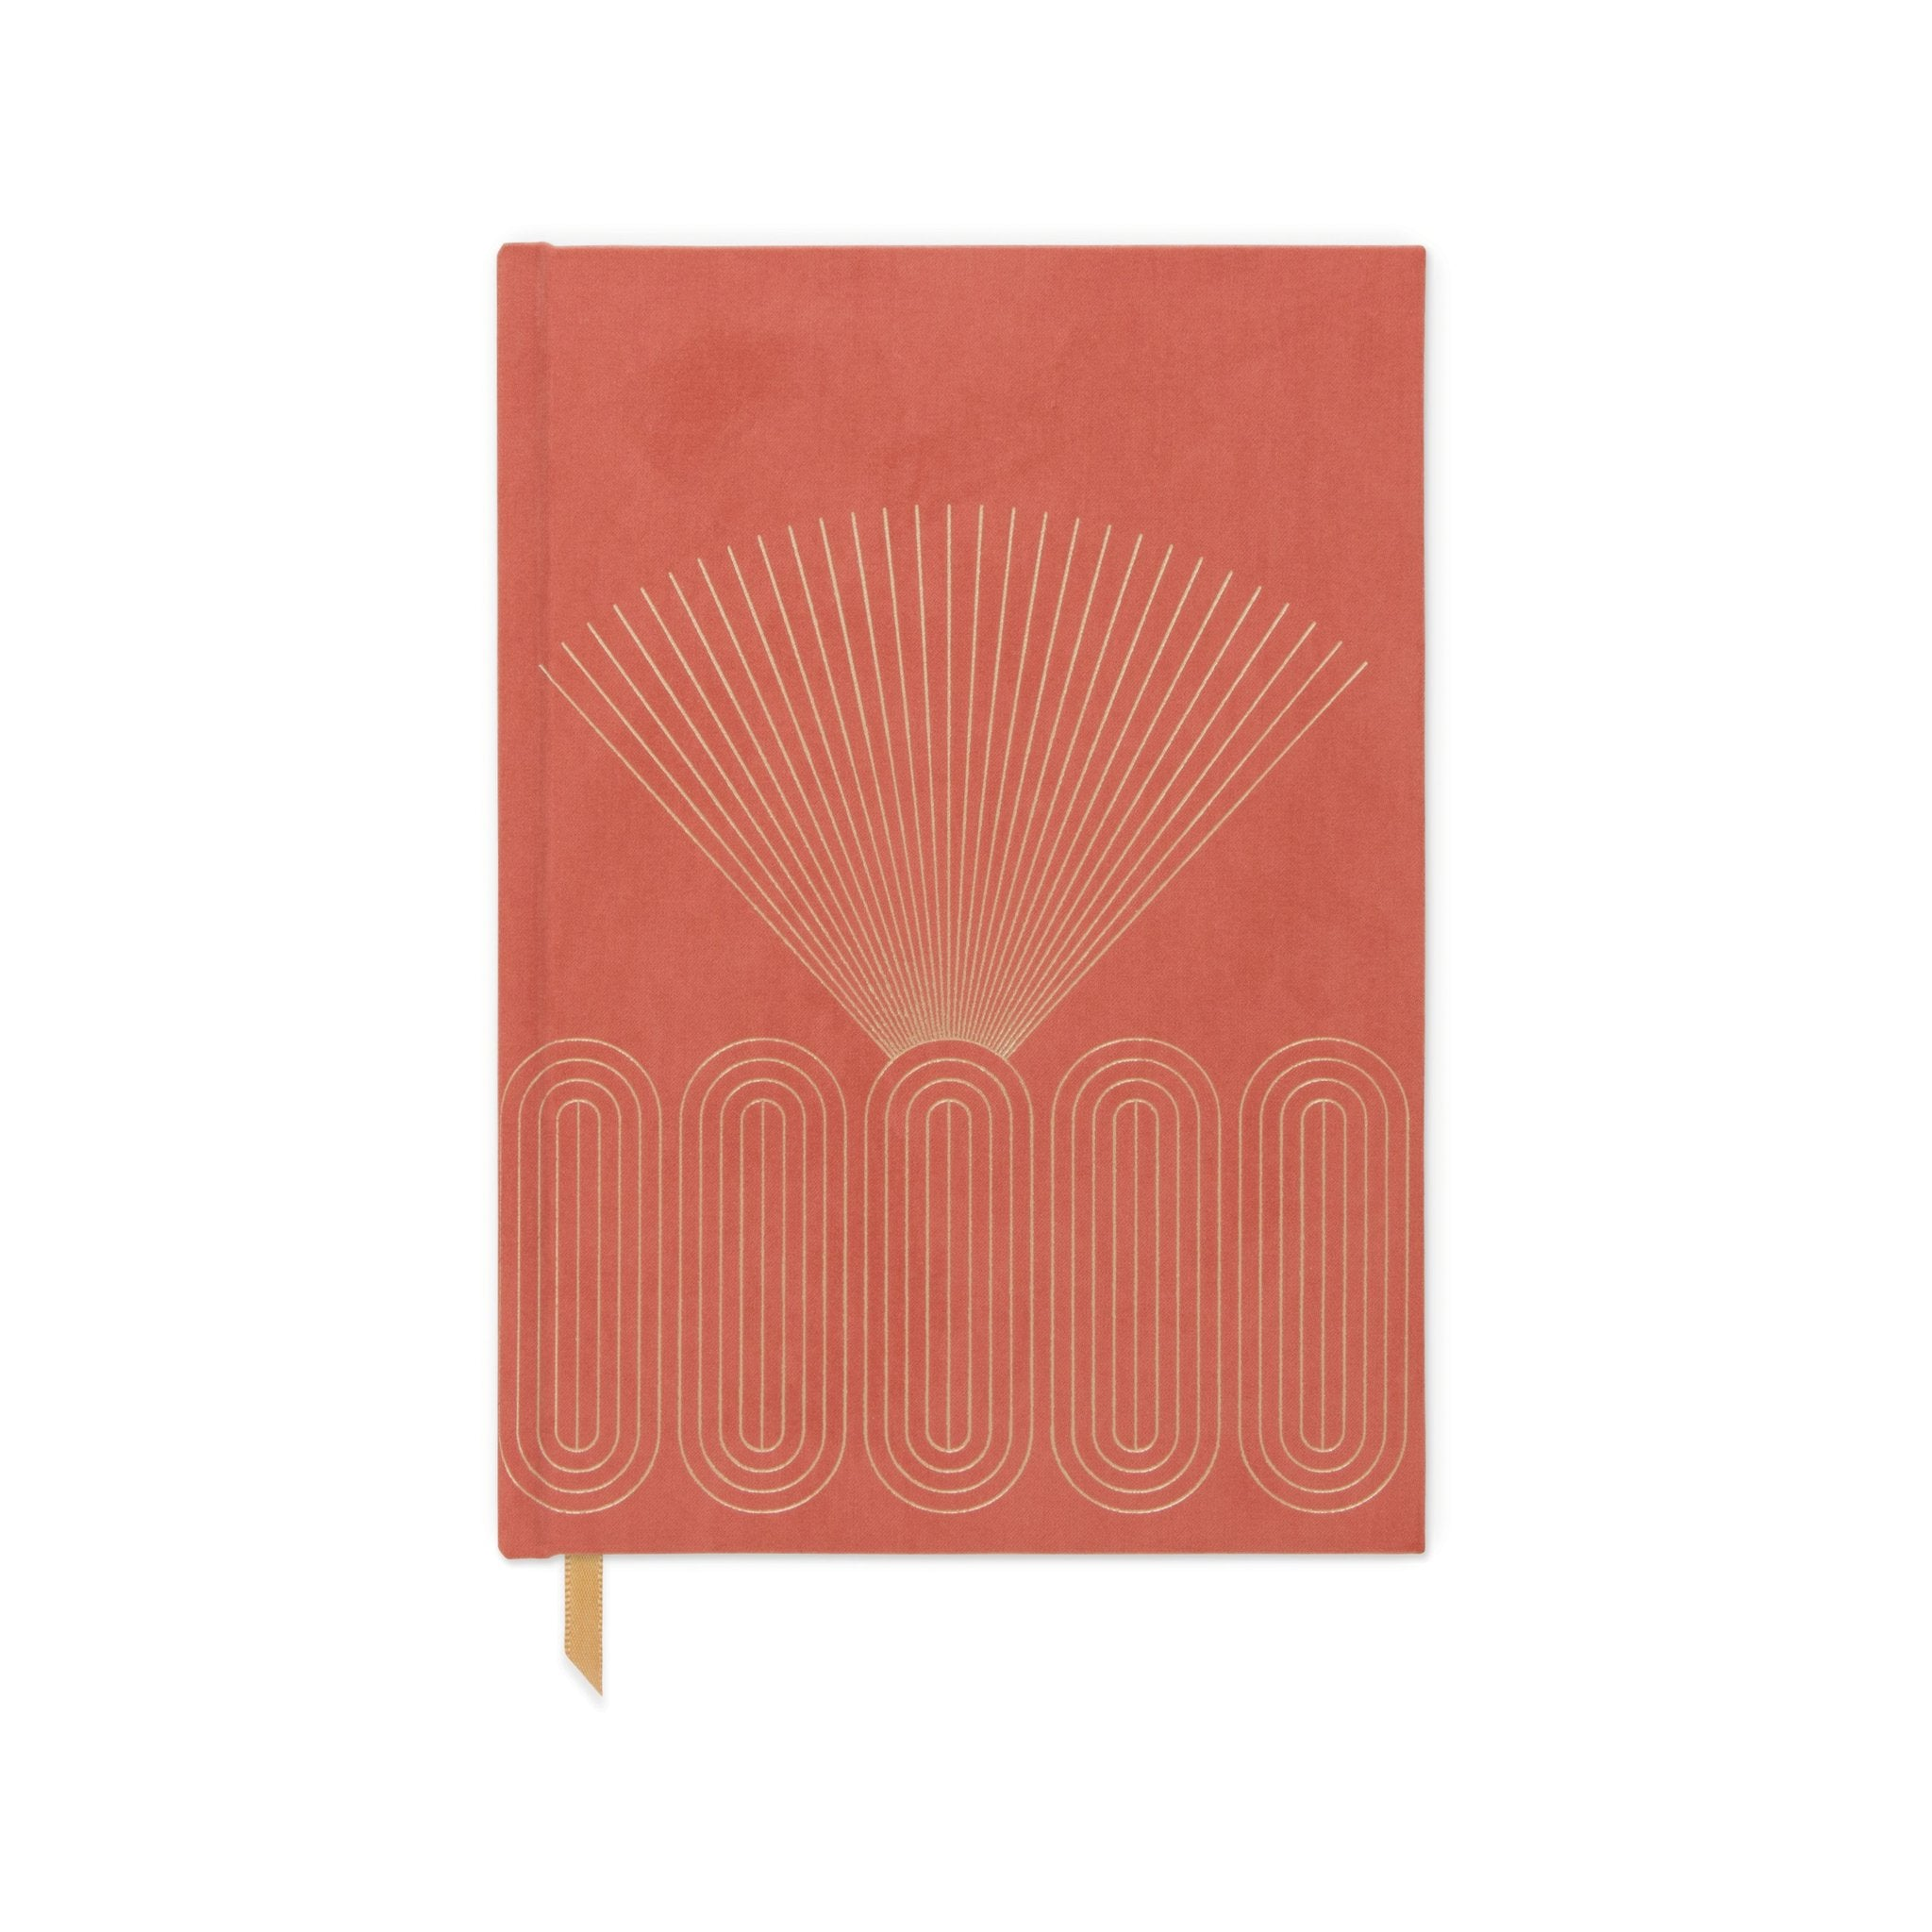 Radiant Rays Notebook